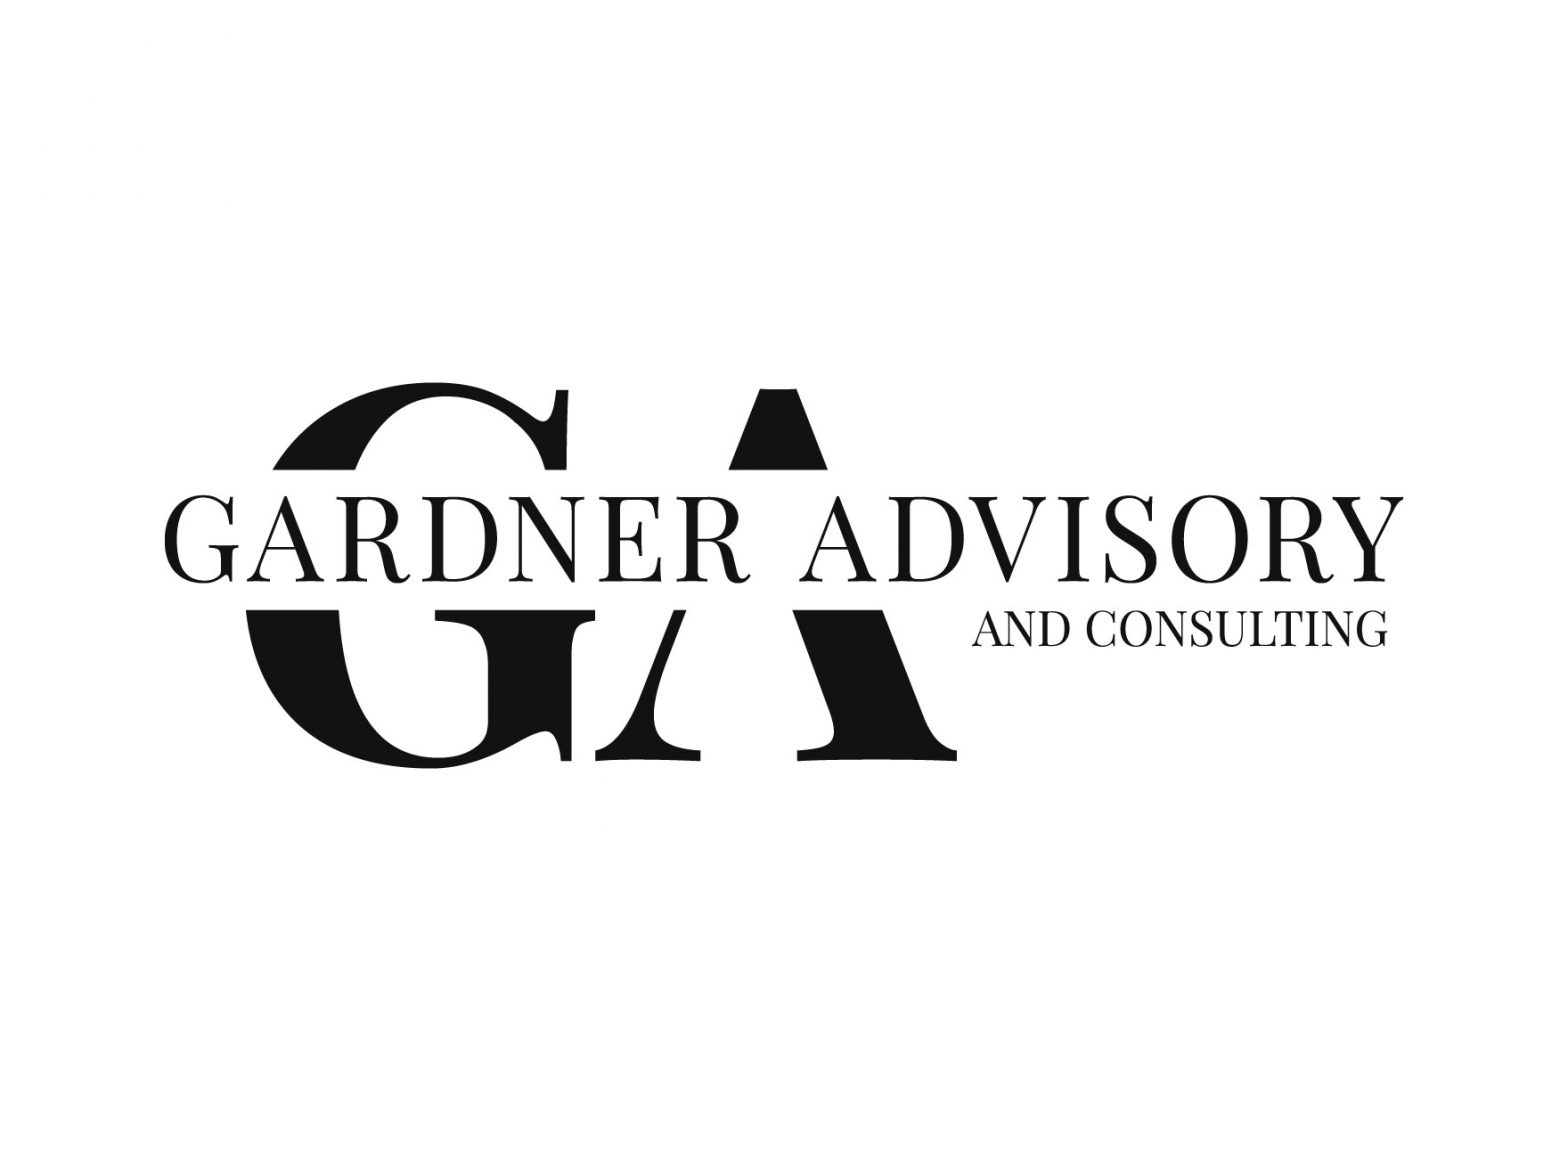 Text-based logo for Gardner Advisory and Consulting